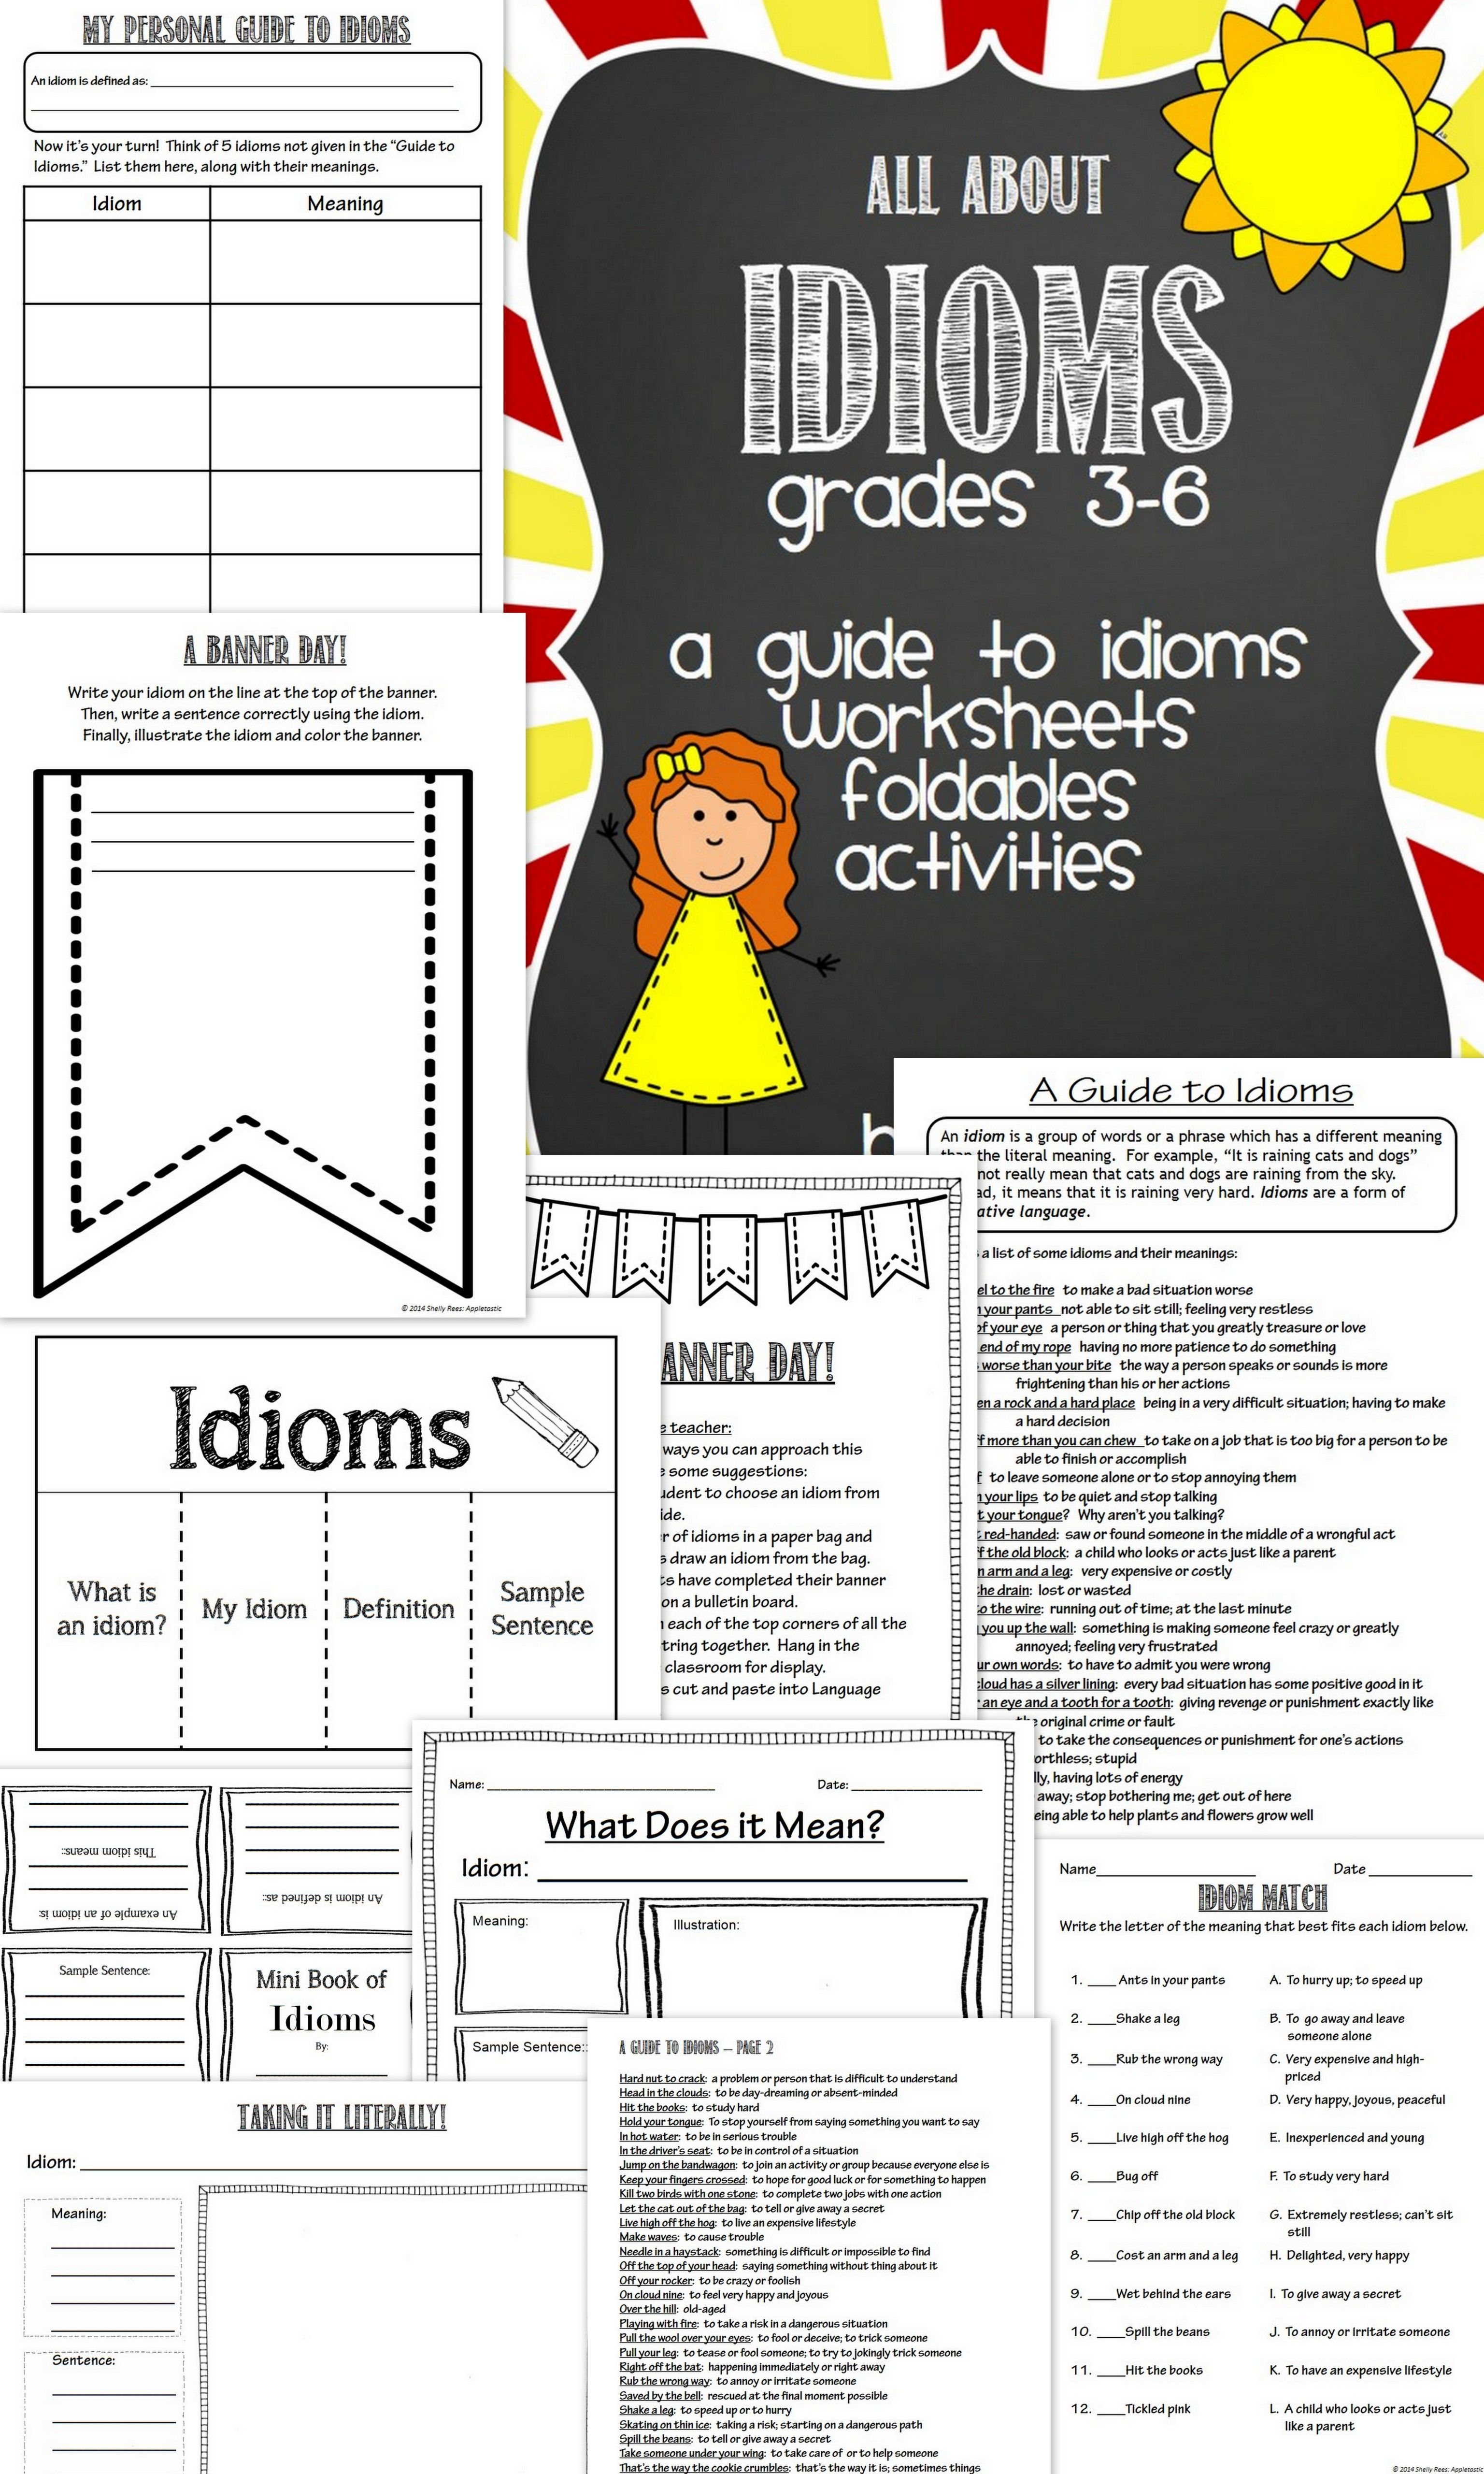 Idioms Worksheets And Activities